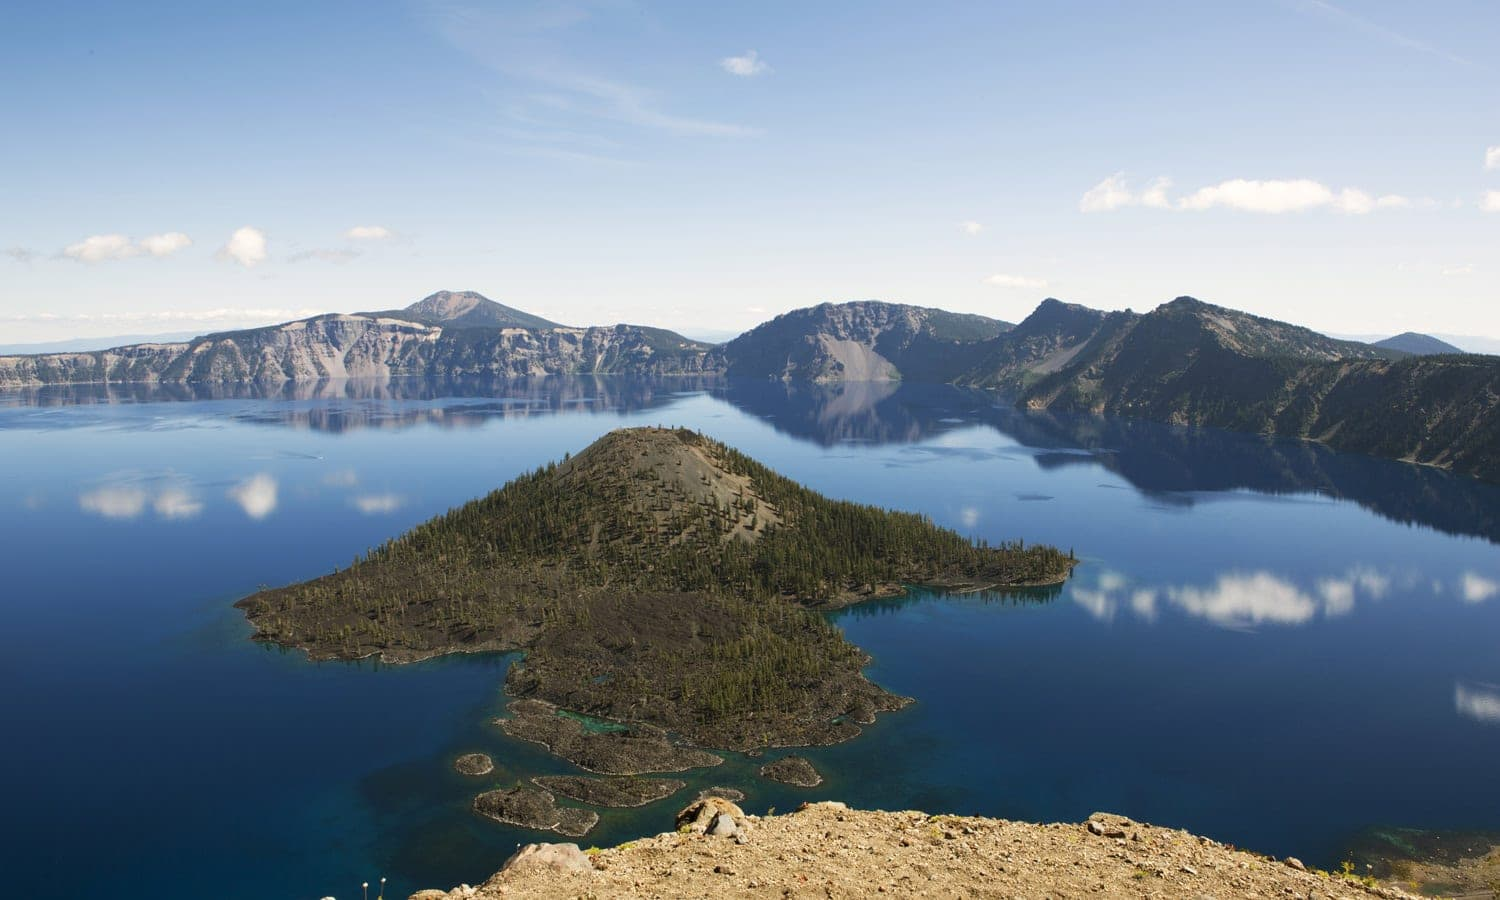 2016-so-andrewcollins-craterlake-01